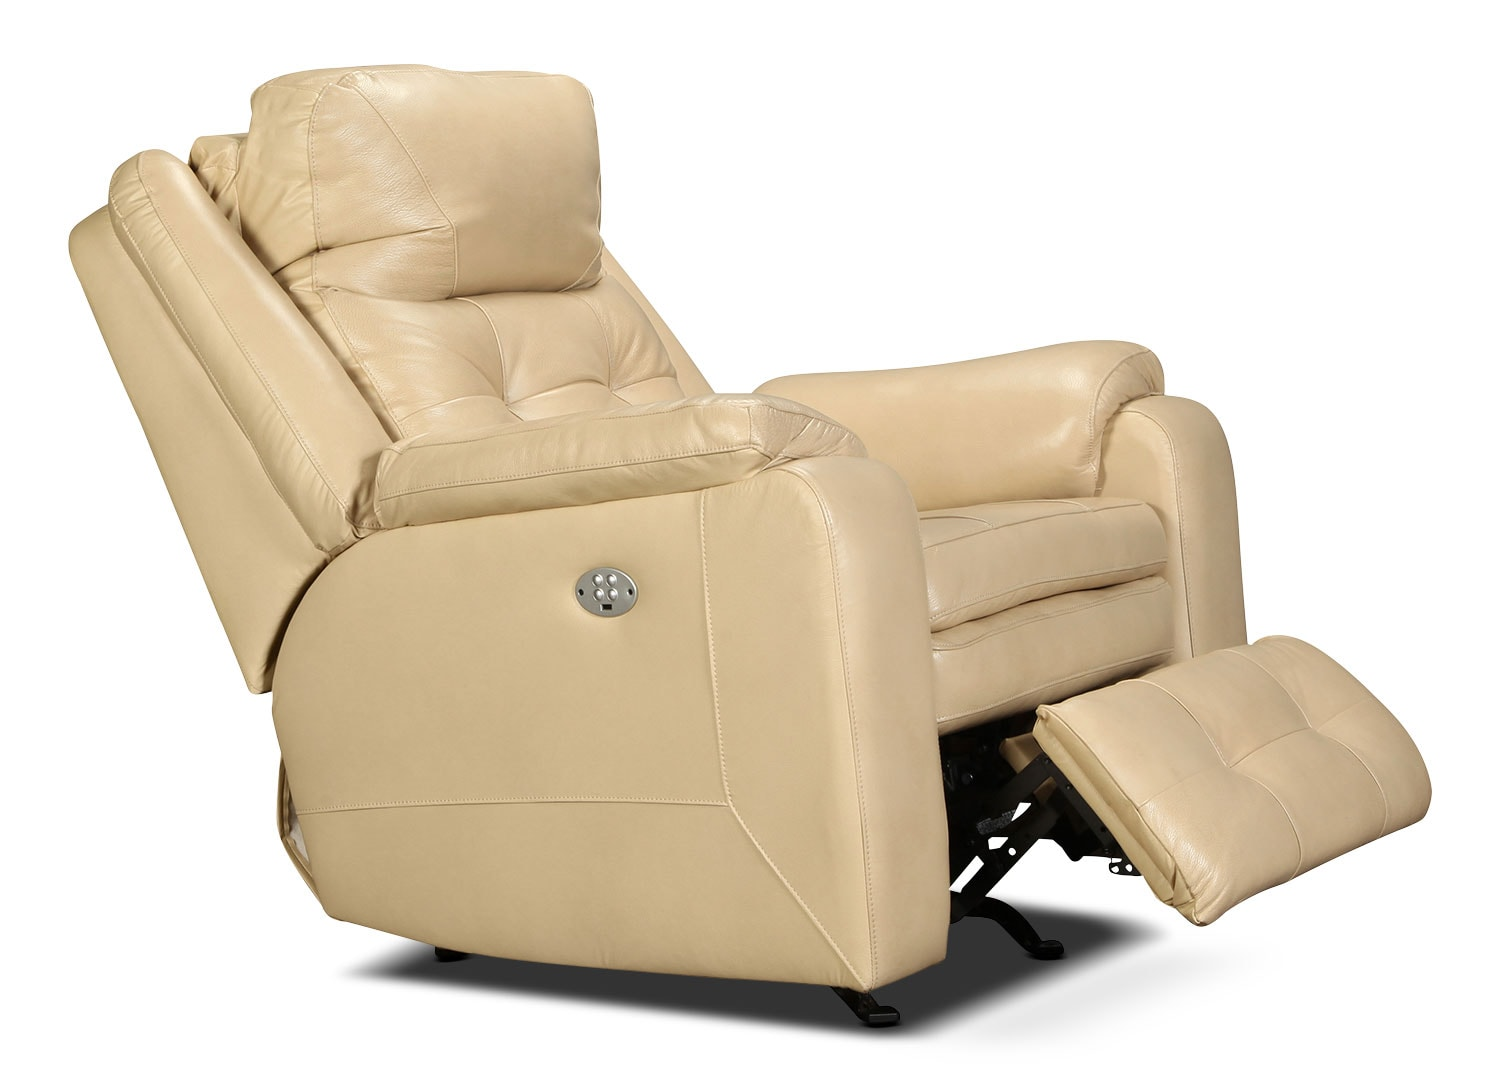 Paola Power Recliner Beach Levin Furniture